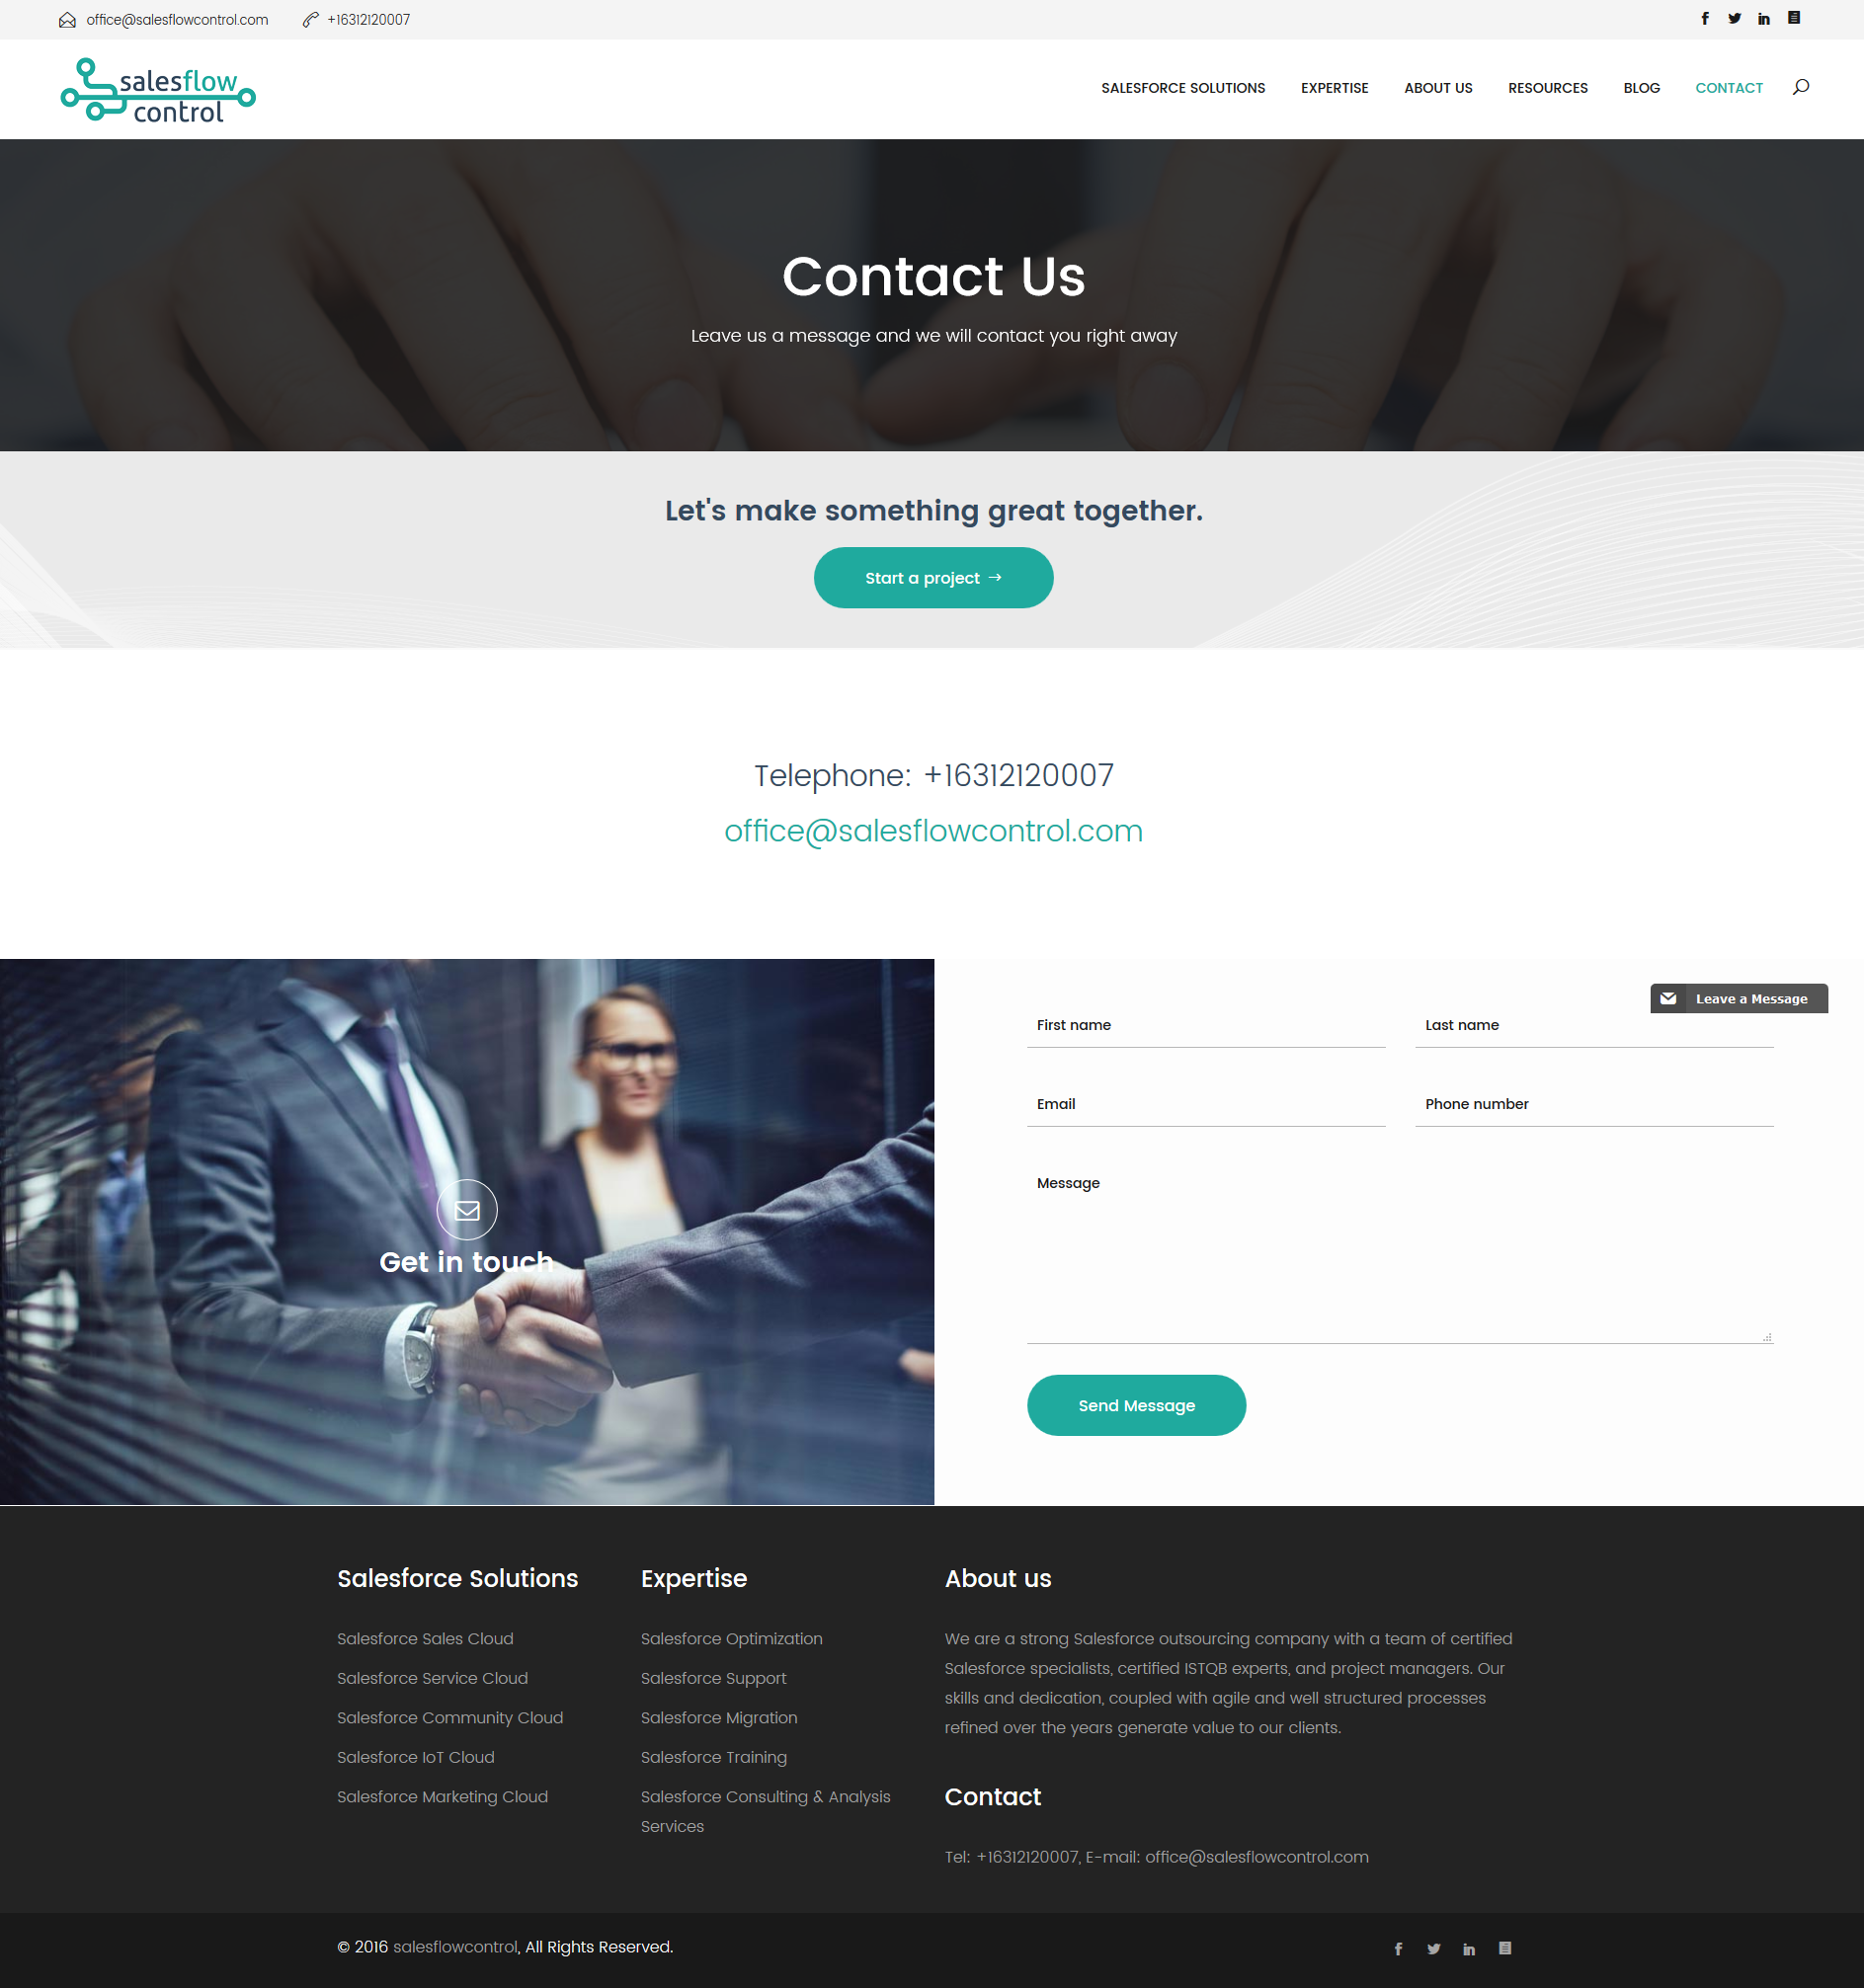 Salesflowcontrol Contact